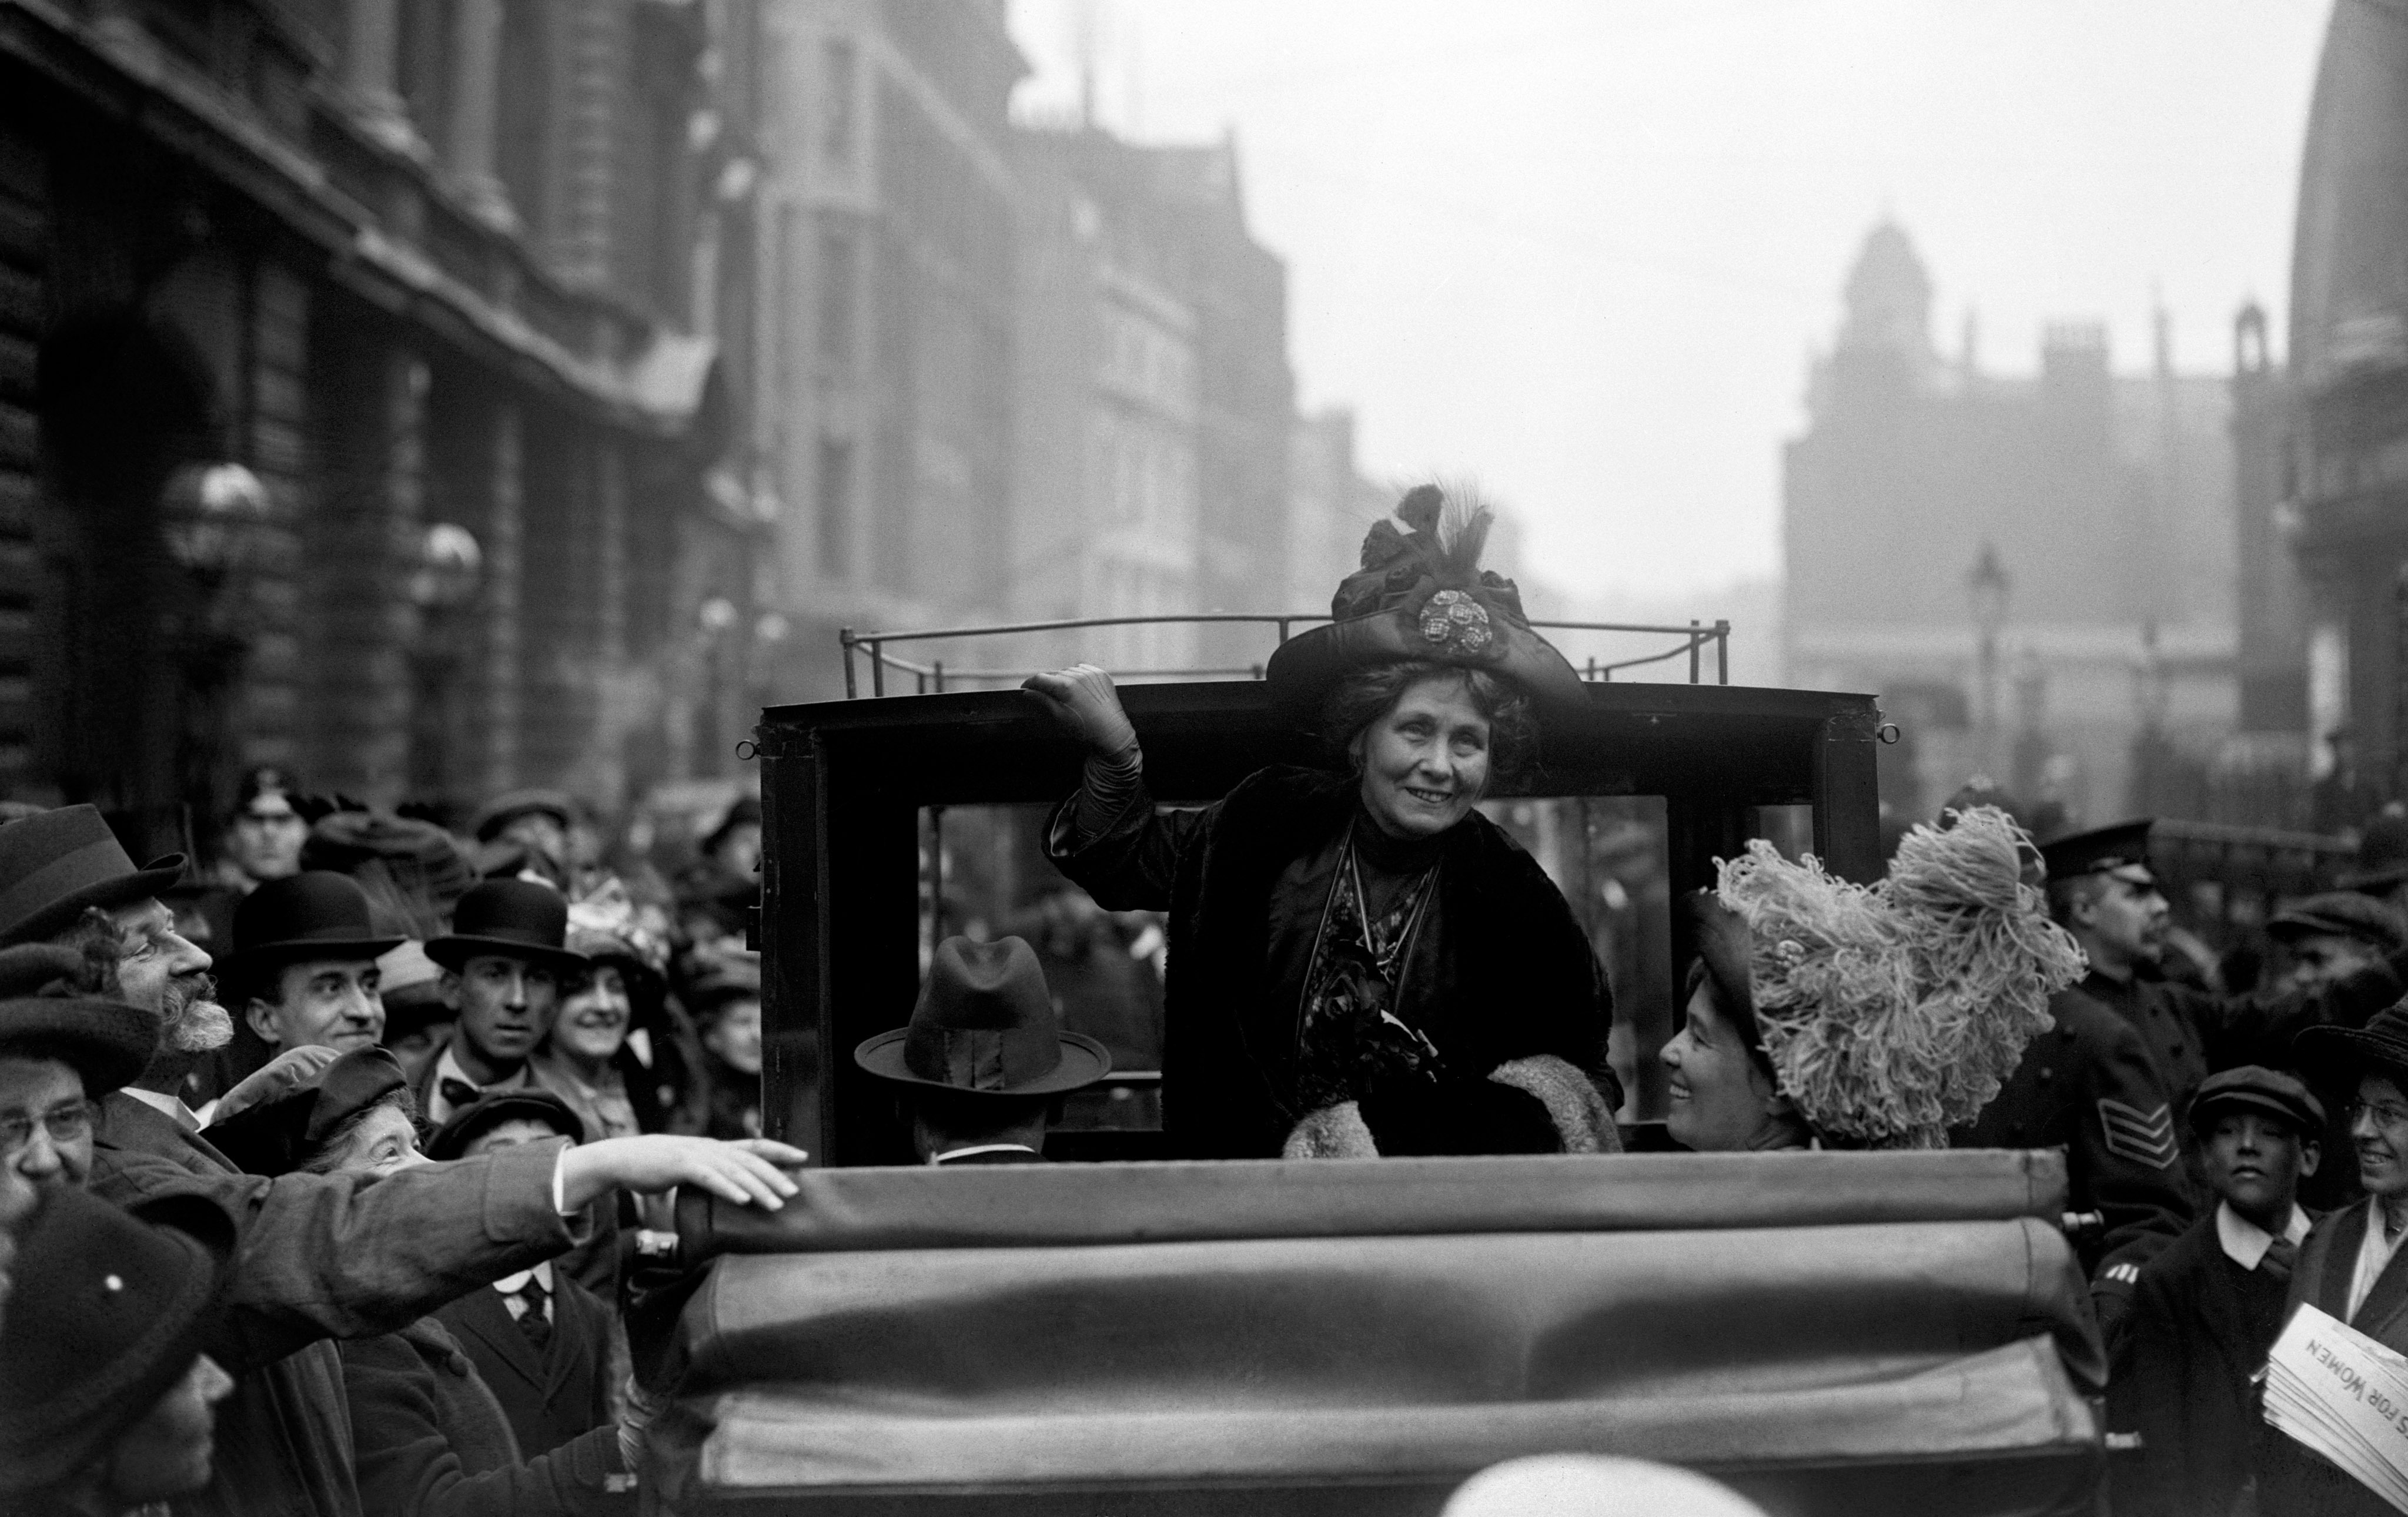 Woman smiling from the back of a carriage, with crowds of onlookers